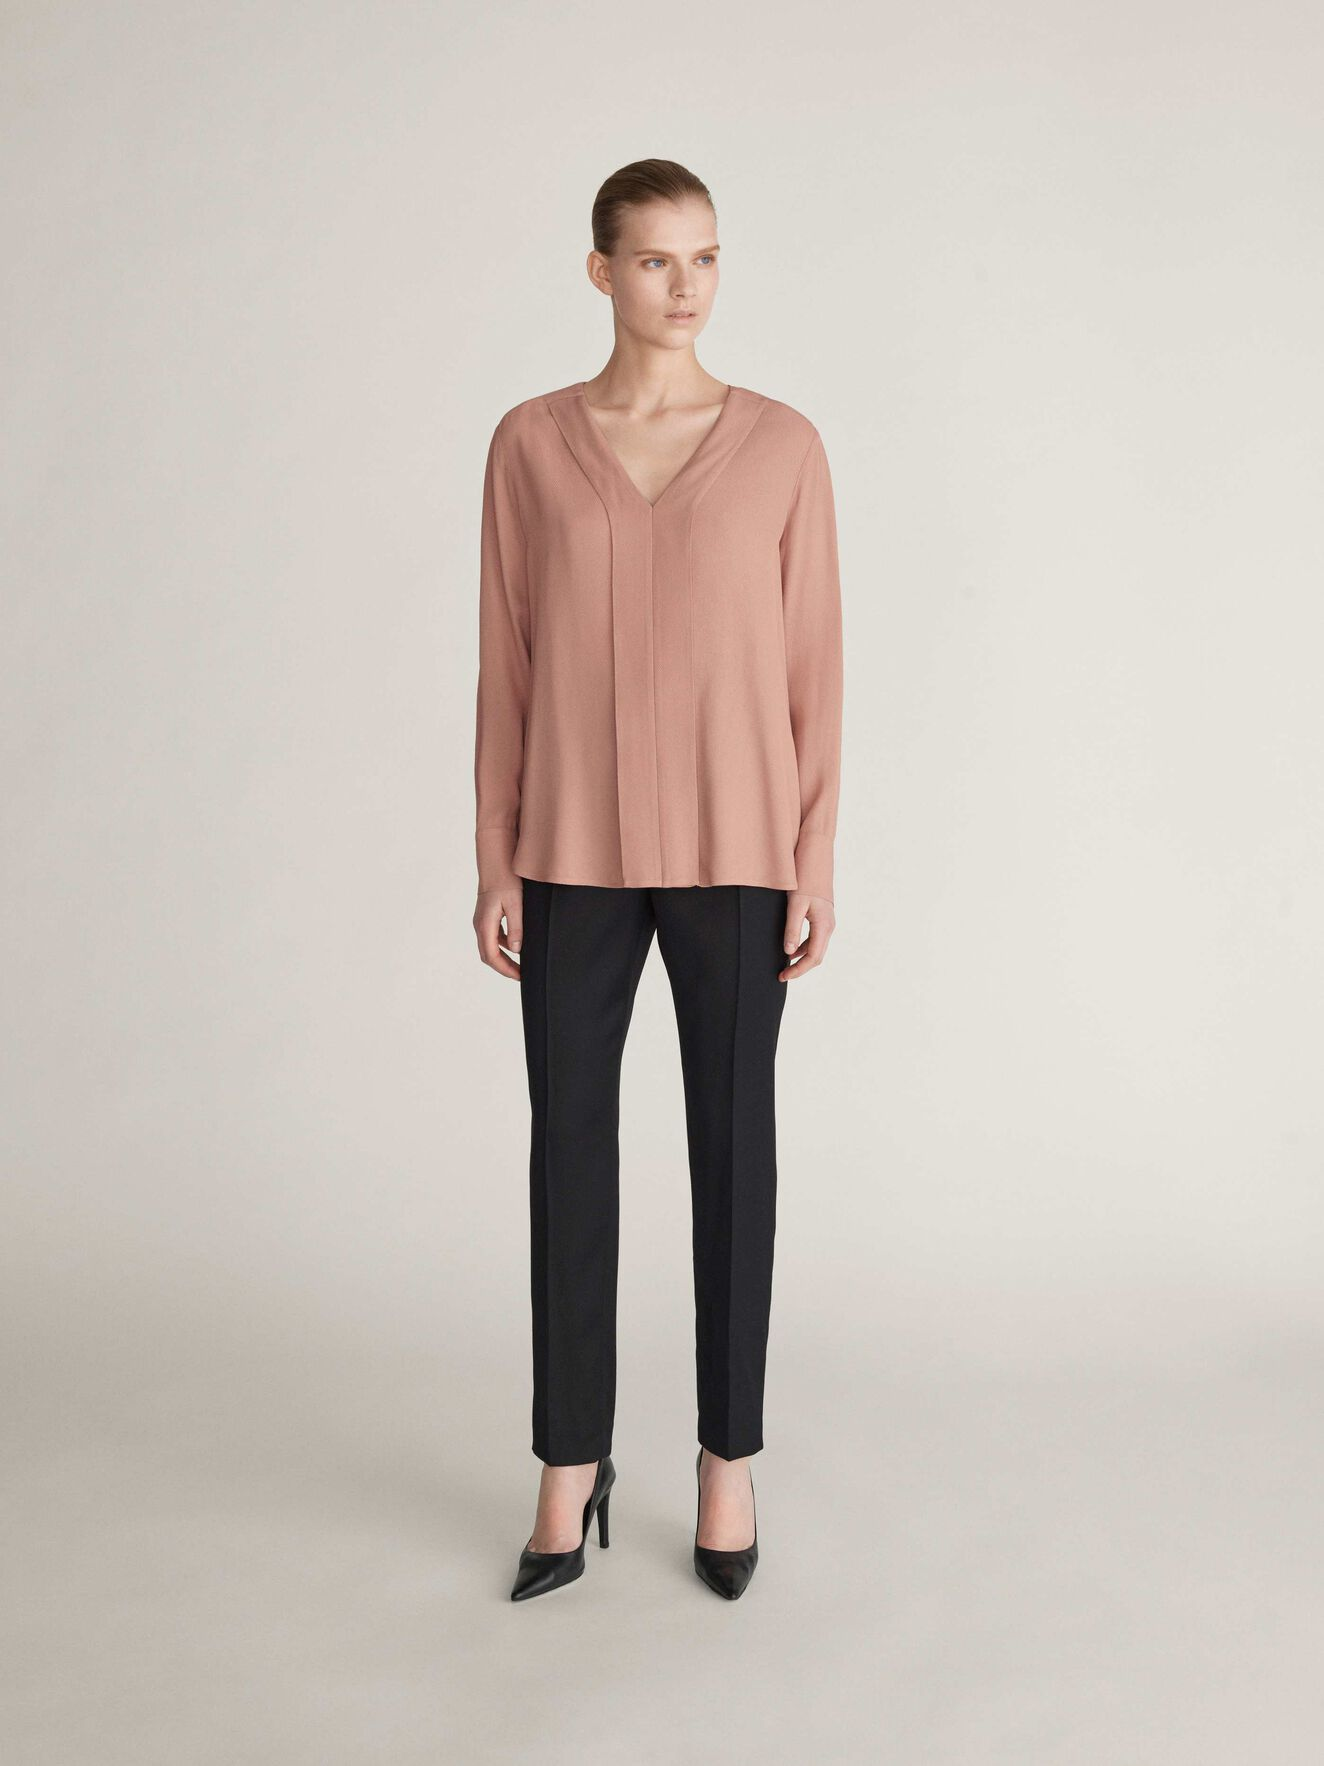 Meristem Bluse in Soft Blush from Tiger of Sweden